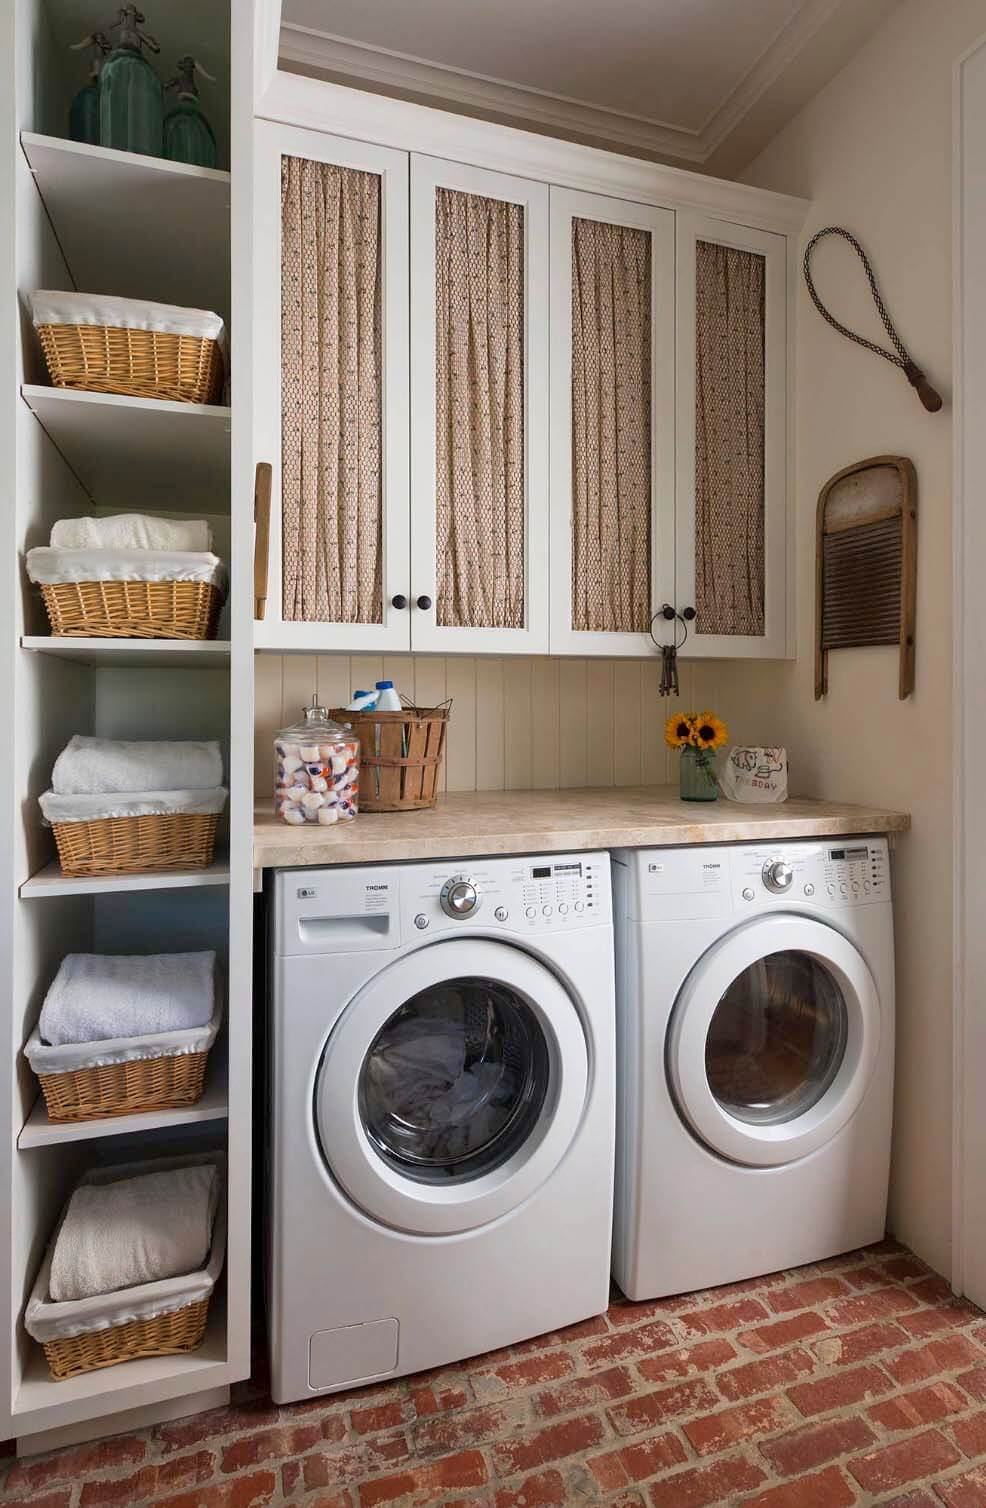 28 Best Small Laundry Room Design Ideas for 2020 on Laundry Room Decor Ideas  id=31769